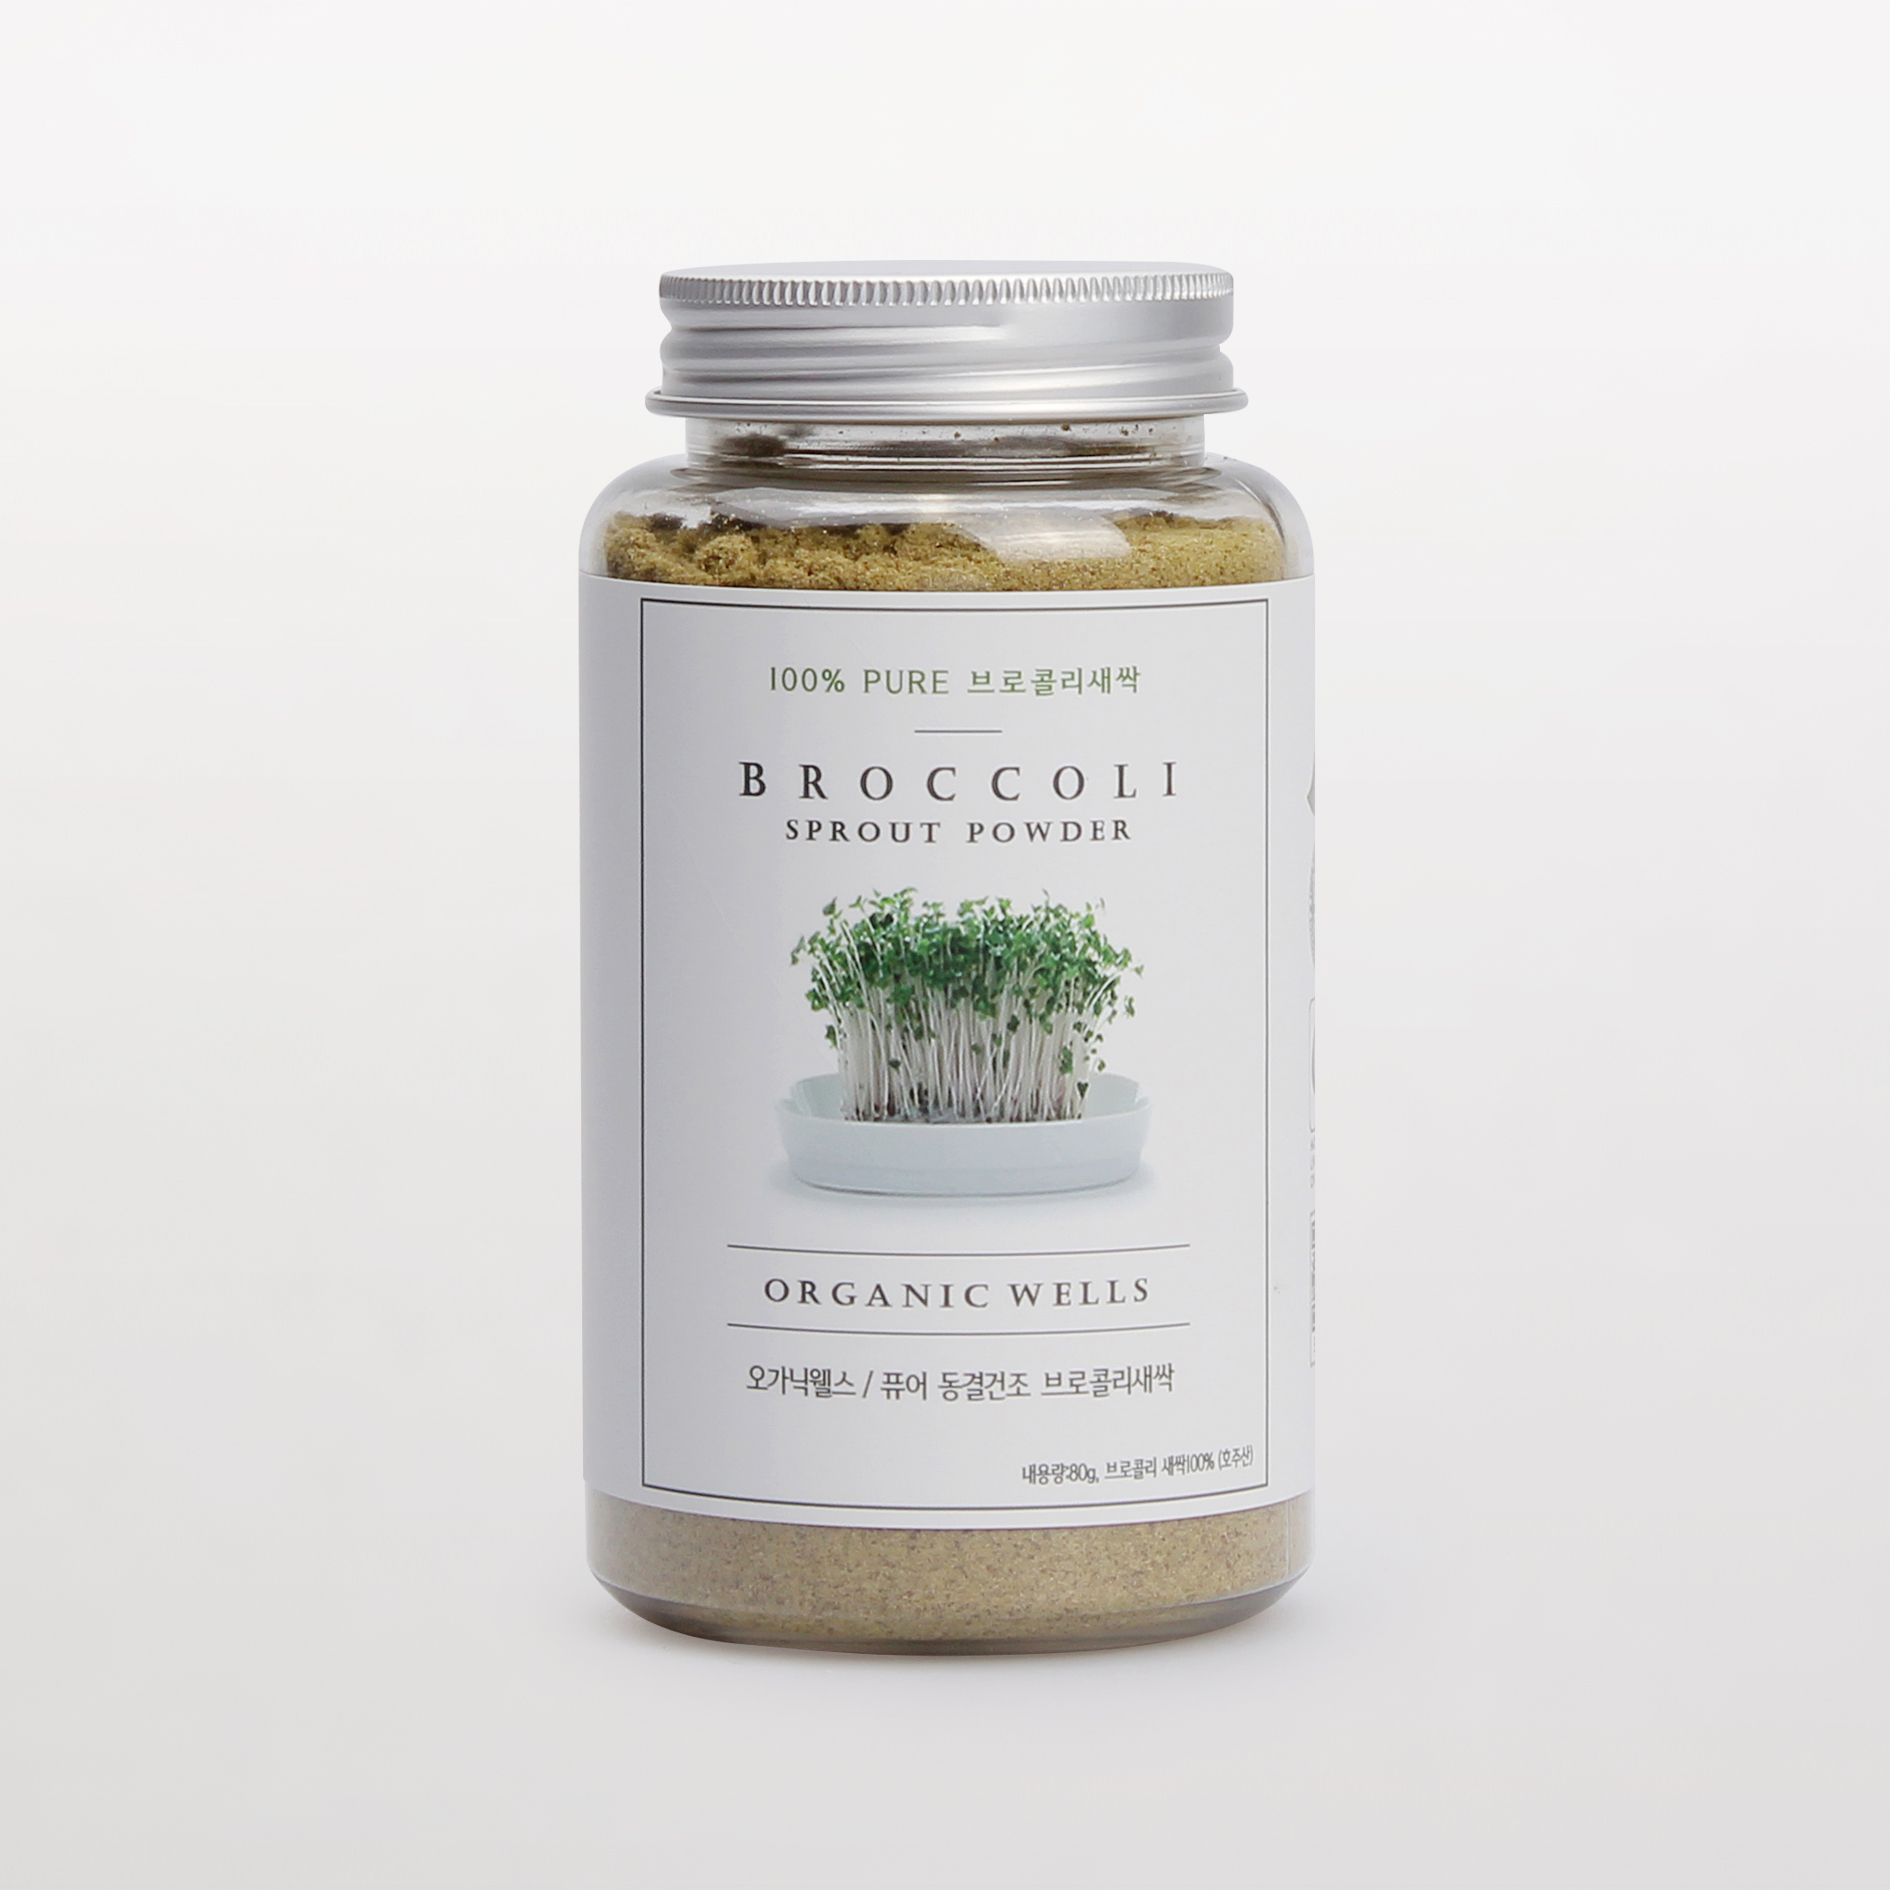 [Organicwells] Broccoli Sprout Powder